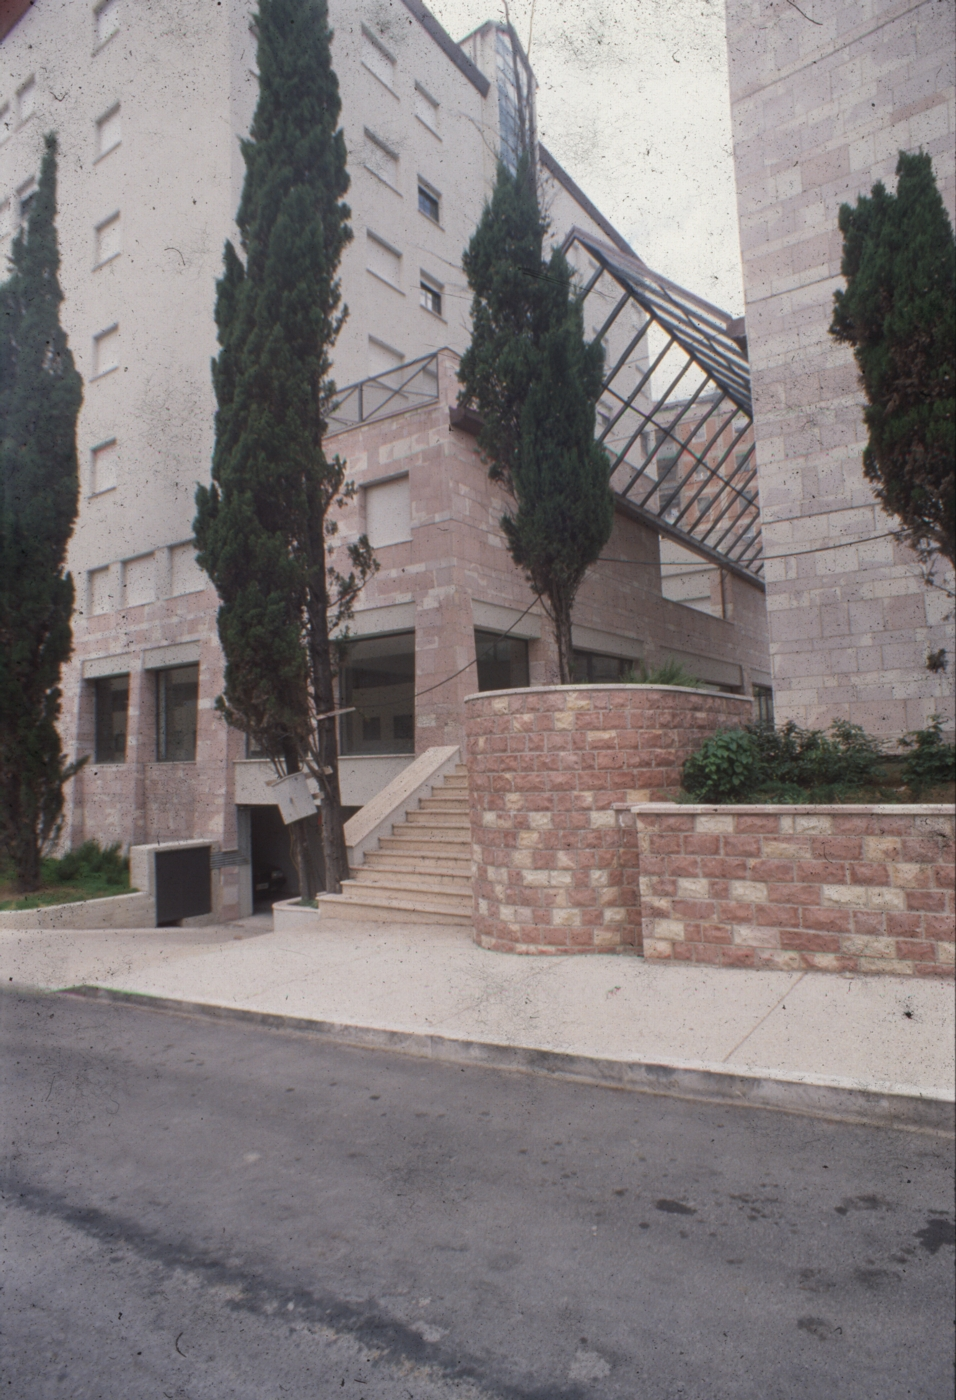 COMMERCIAL & RESIDENTIAL CENTER  Perugia, 1988